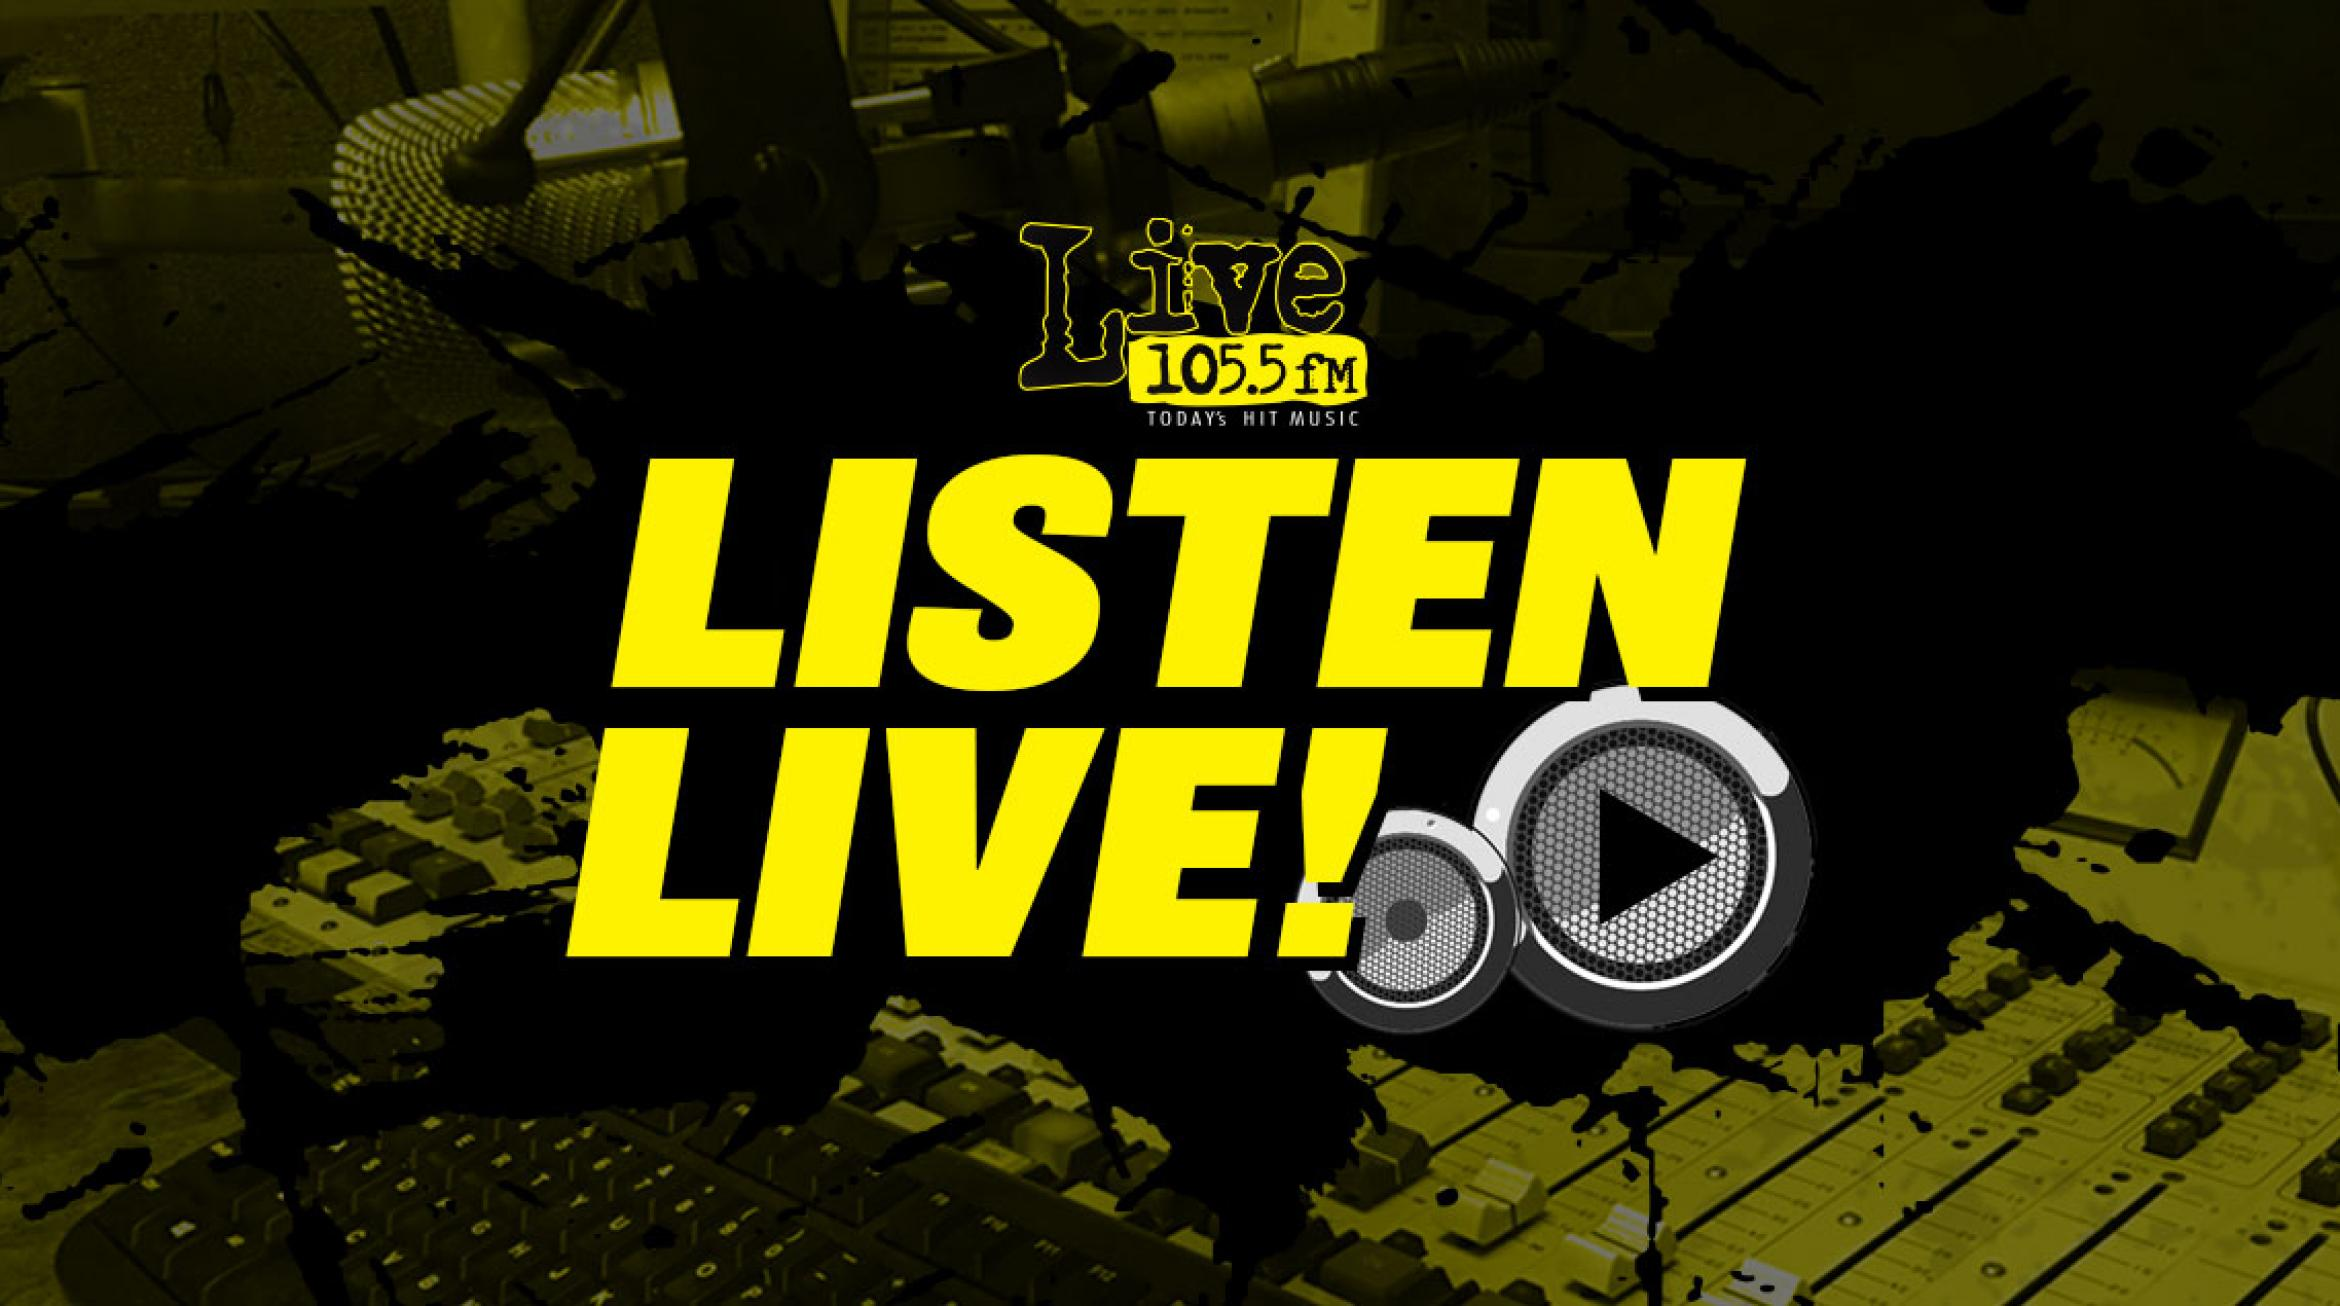 1140x635 ListenLive LIVE1055